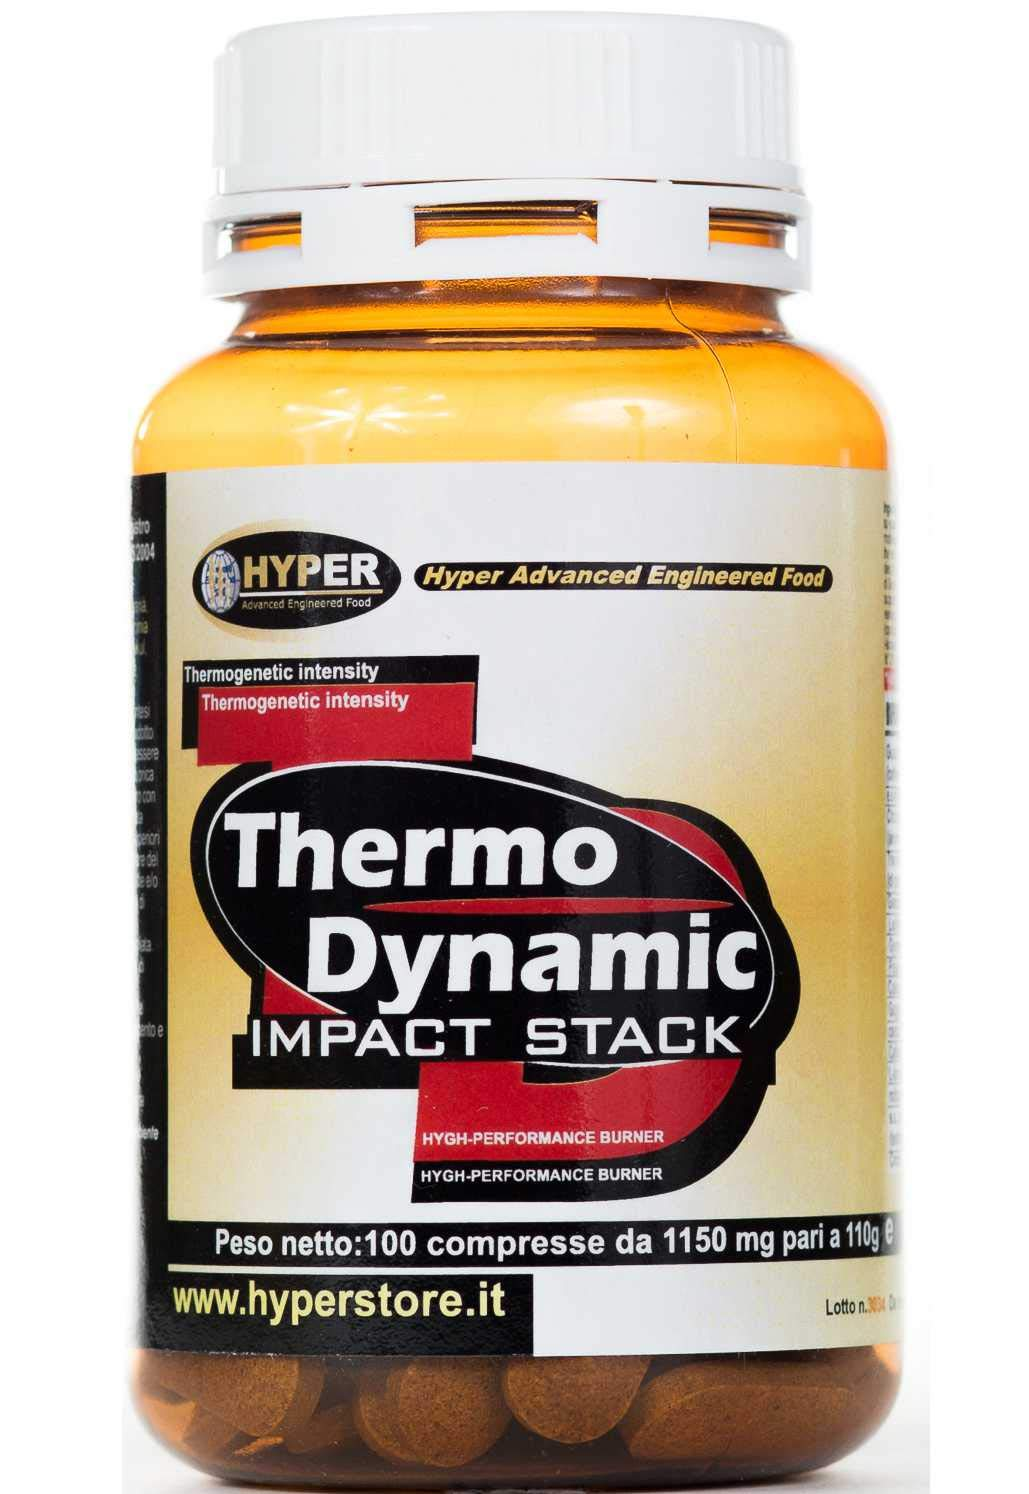 Thermogenic Fat Burning Lose Weight Fat Fast Thermo Dynamich 100